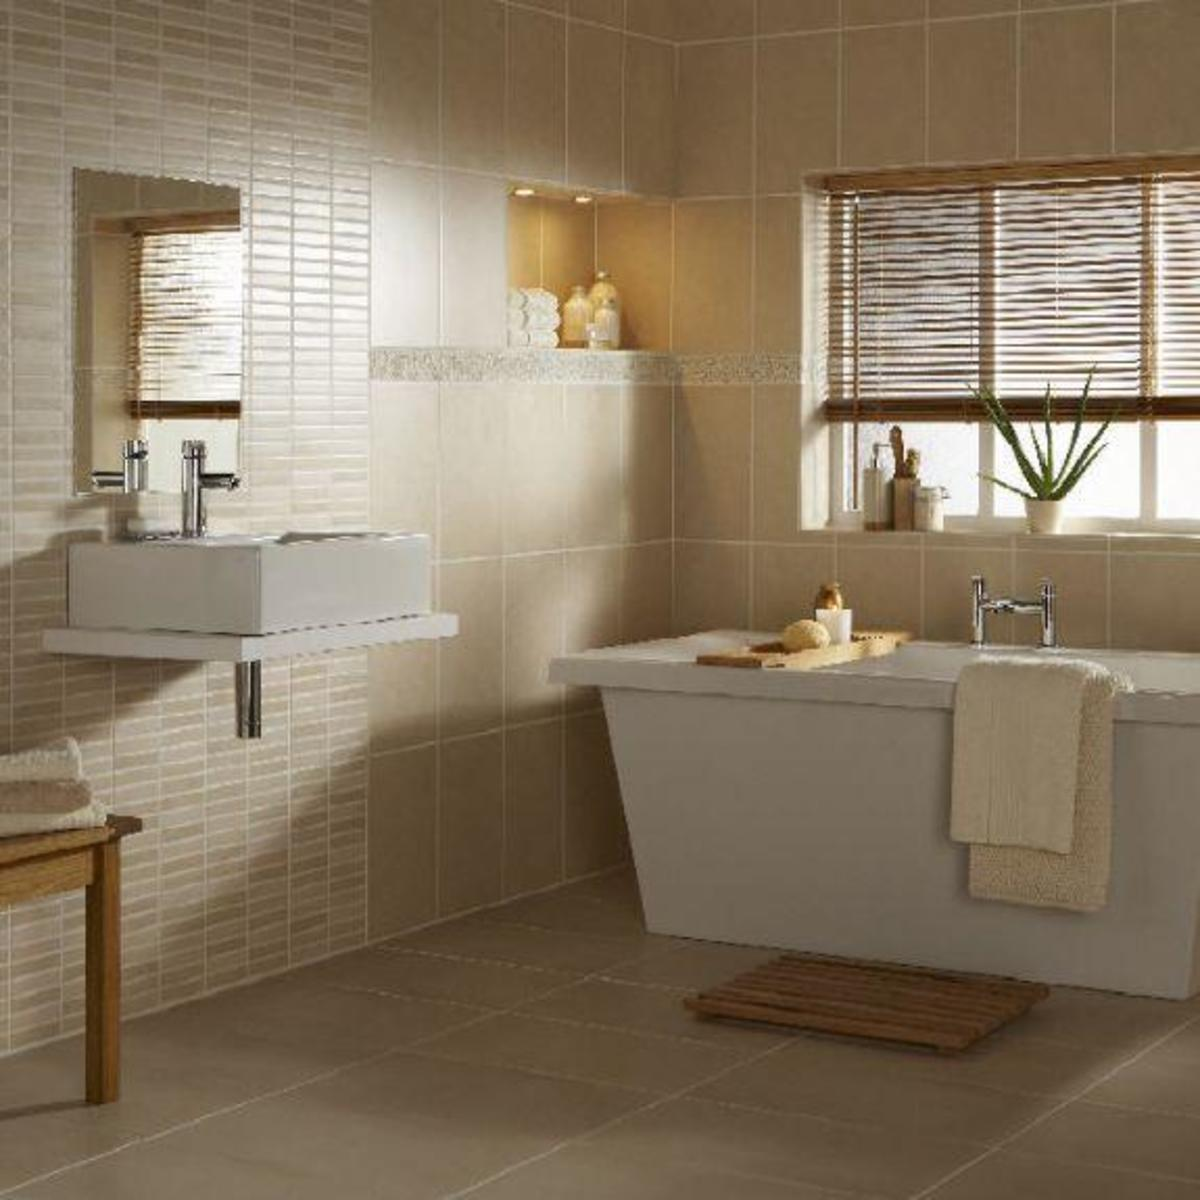 Wall & Floor Tiles, Should They Match? | HubPages